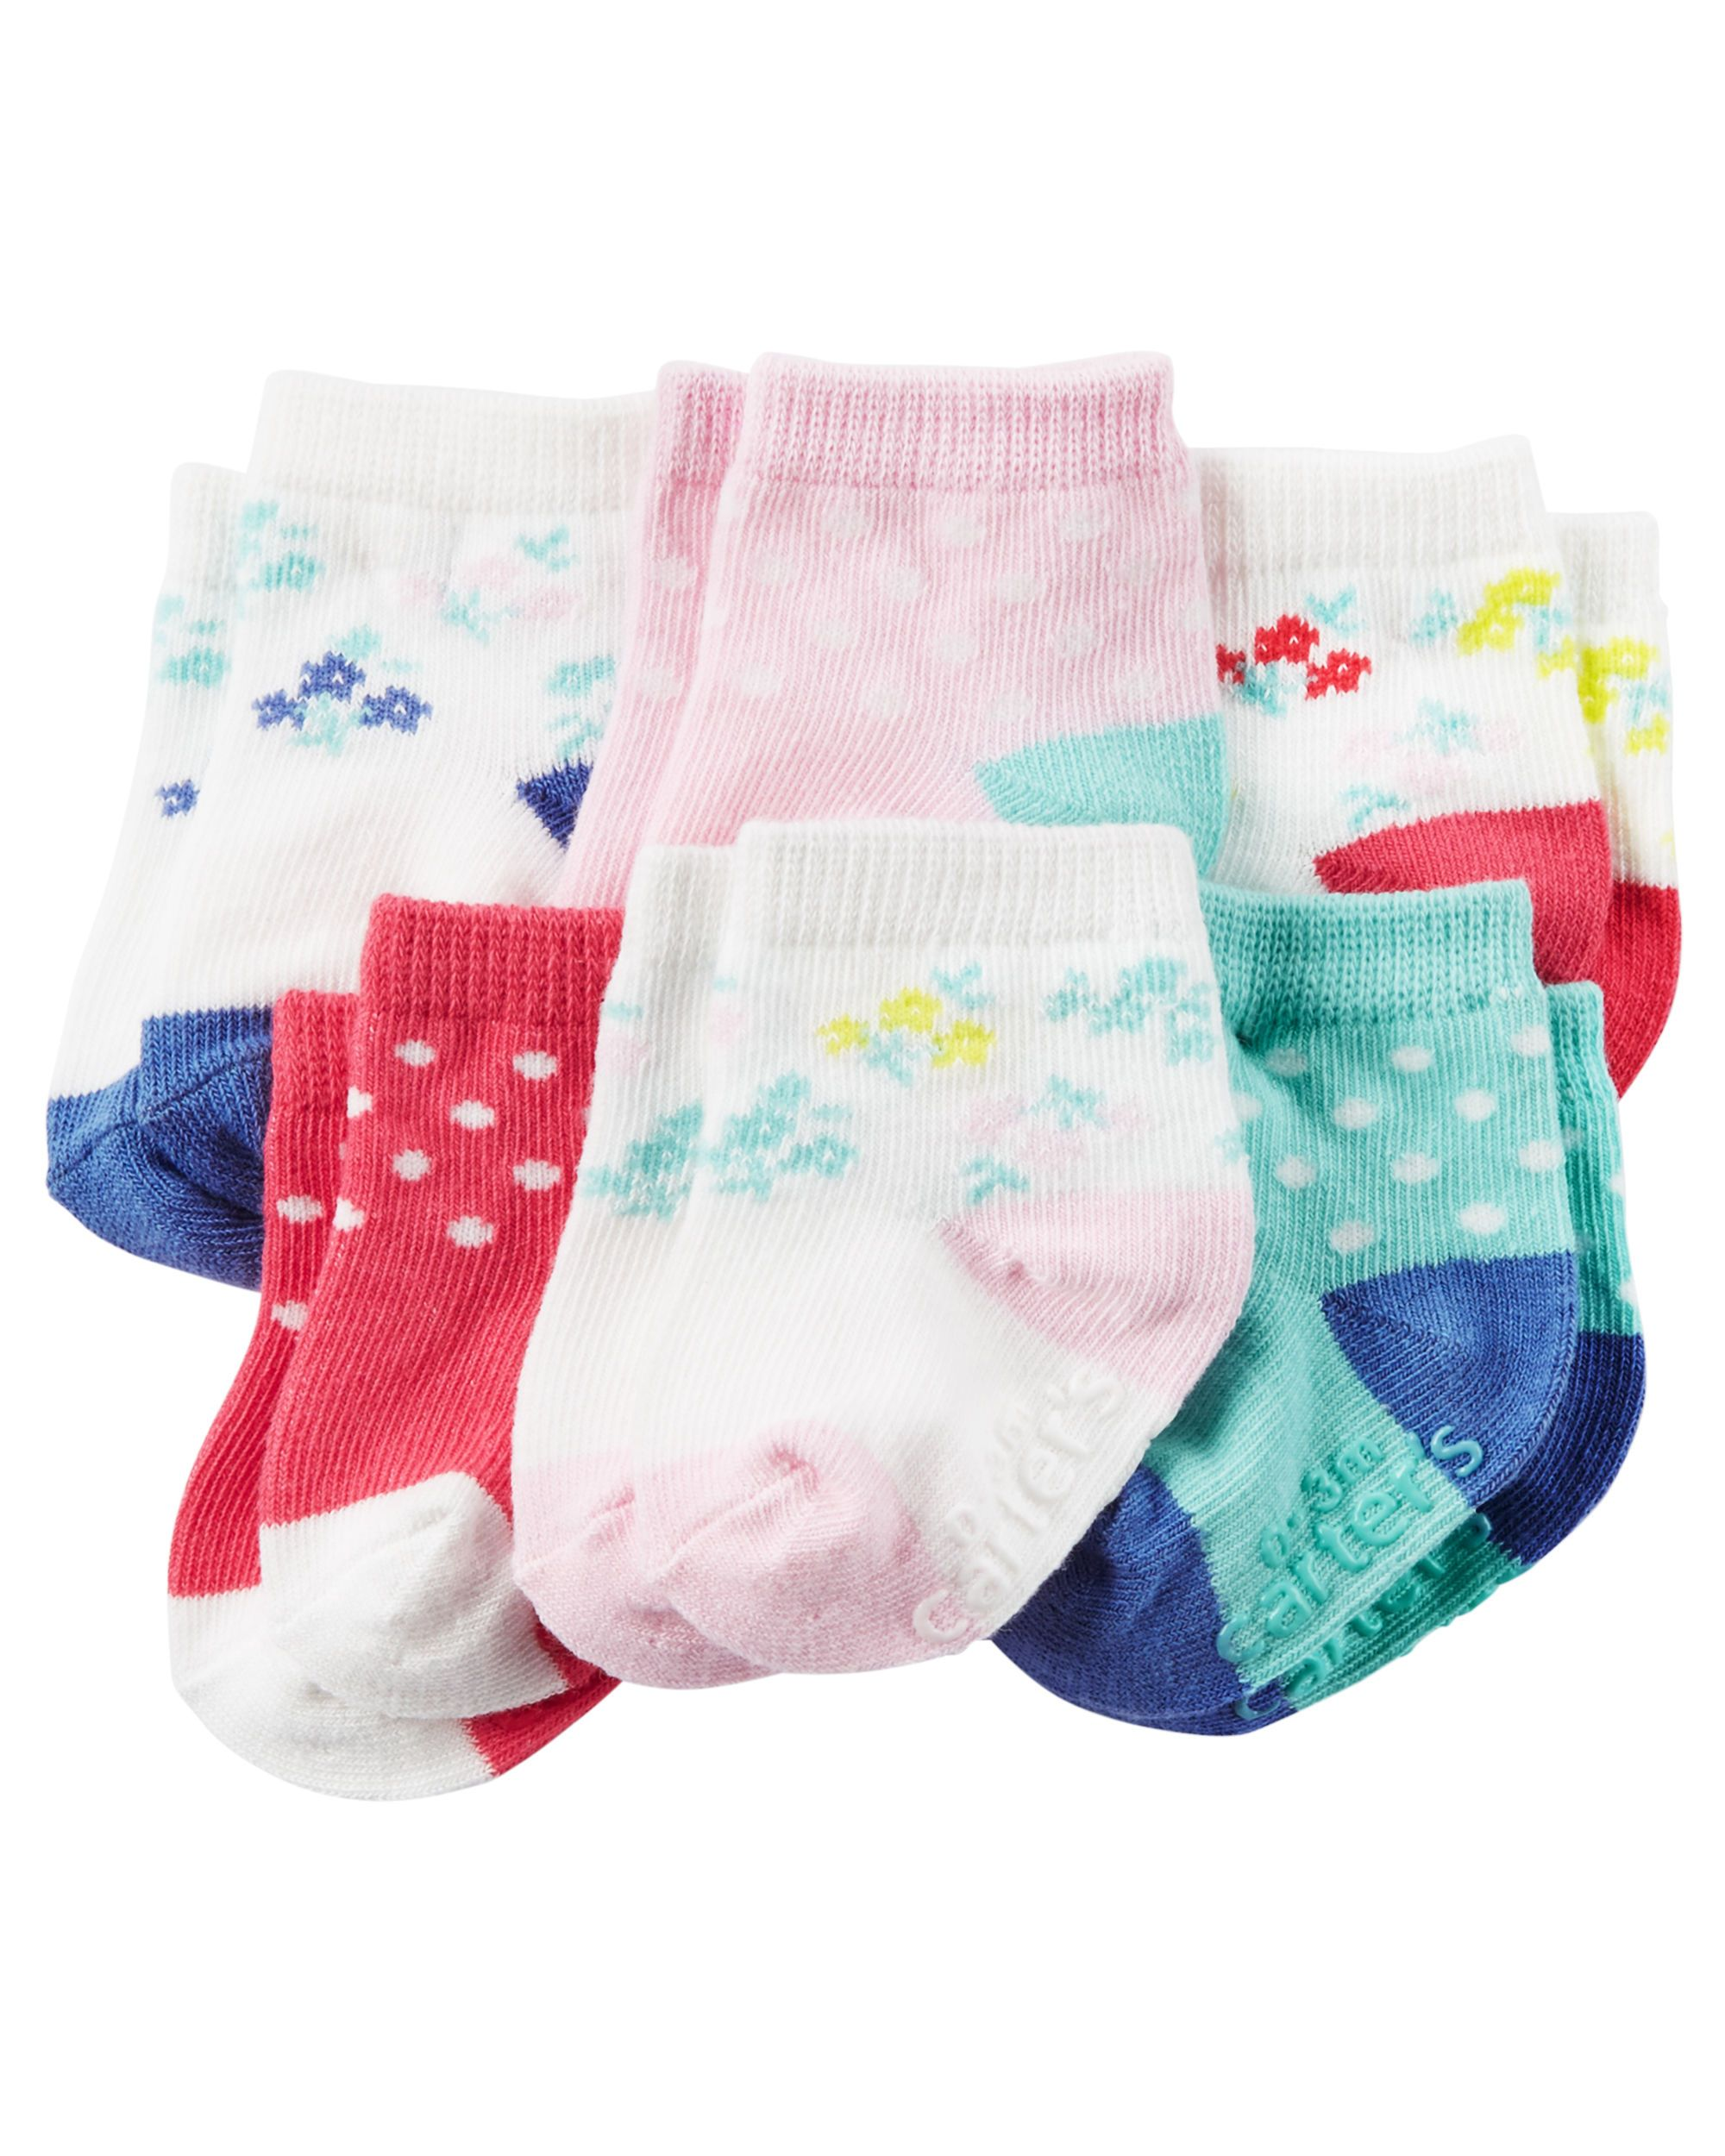 8fa797e4fc495 Baby Girl 6-Pack Socks from Carters.com. Shop clothing & accessories from a  trusted name in kids, toddlers, and baby clothes.